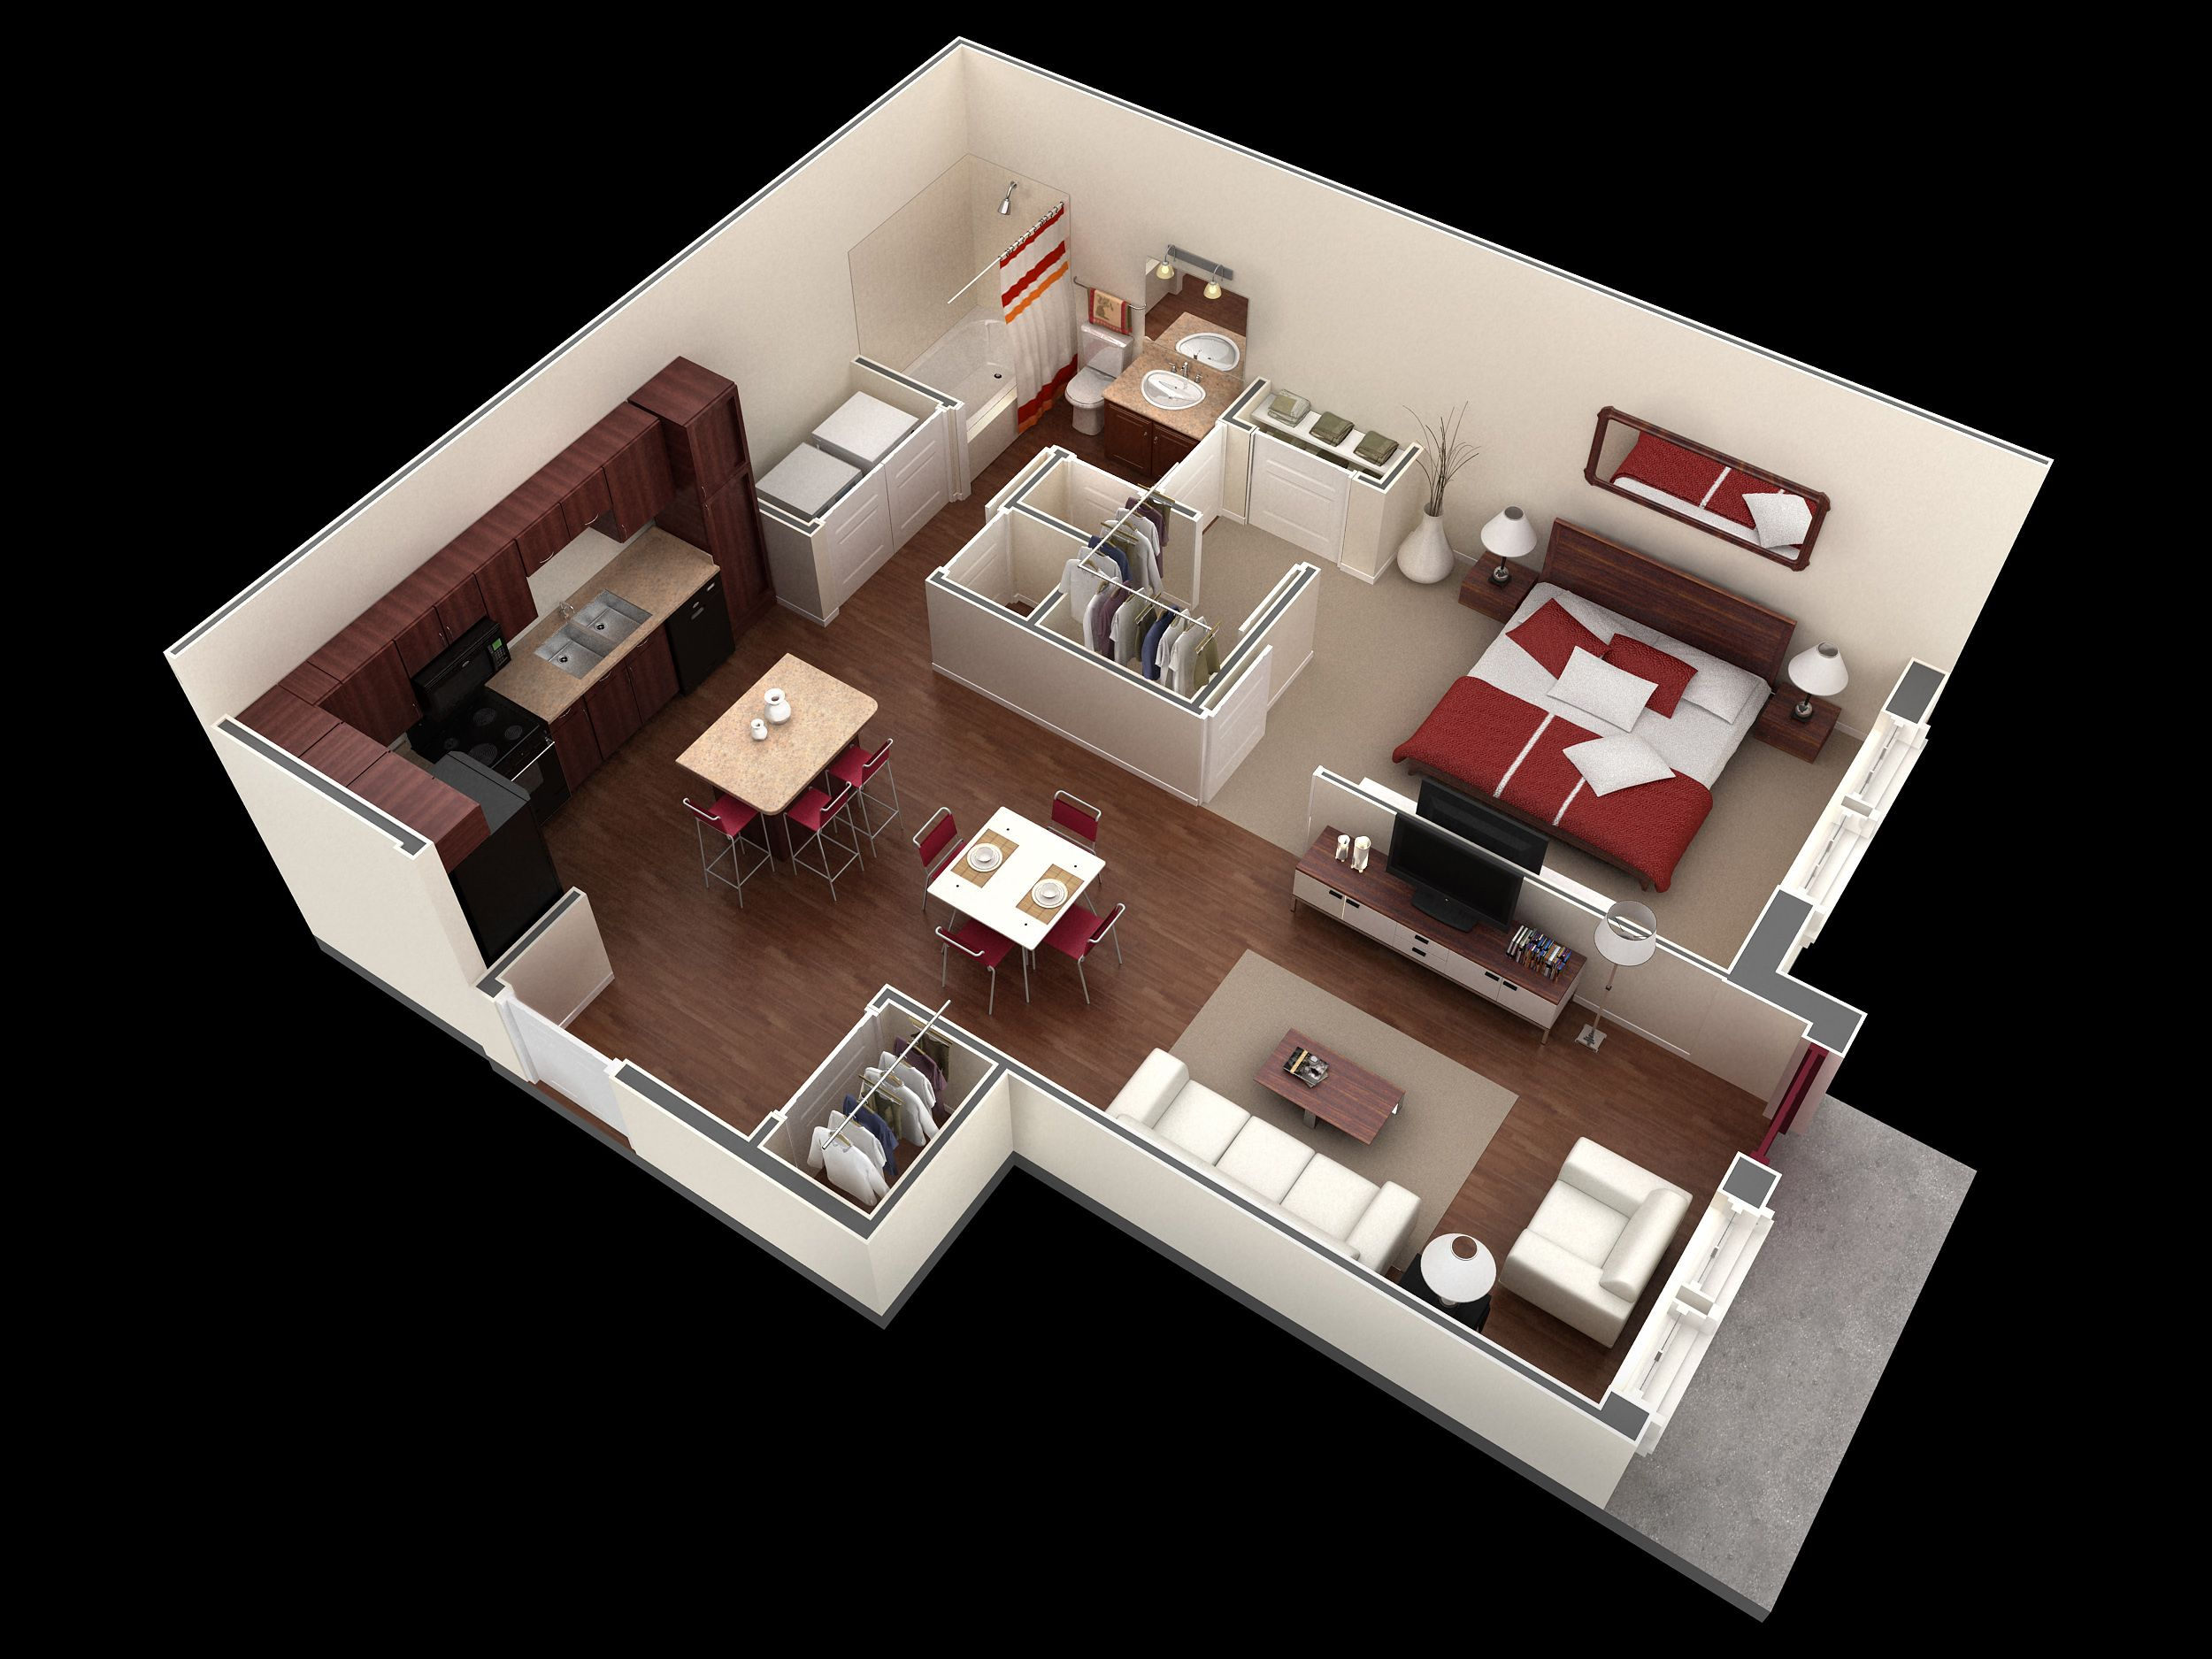 1 bedroom 1 bath 772 sf apartment at Springs at Legacy mons in